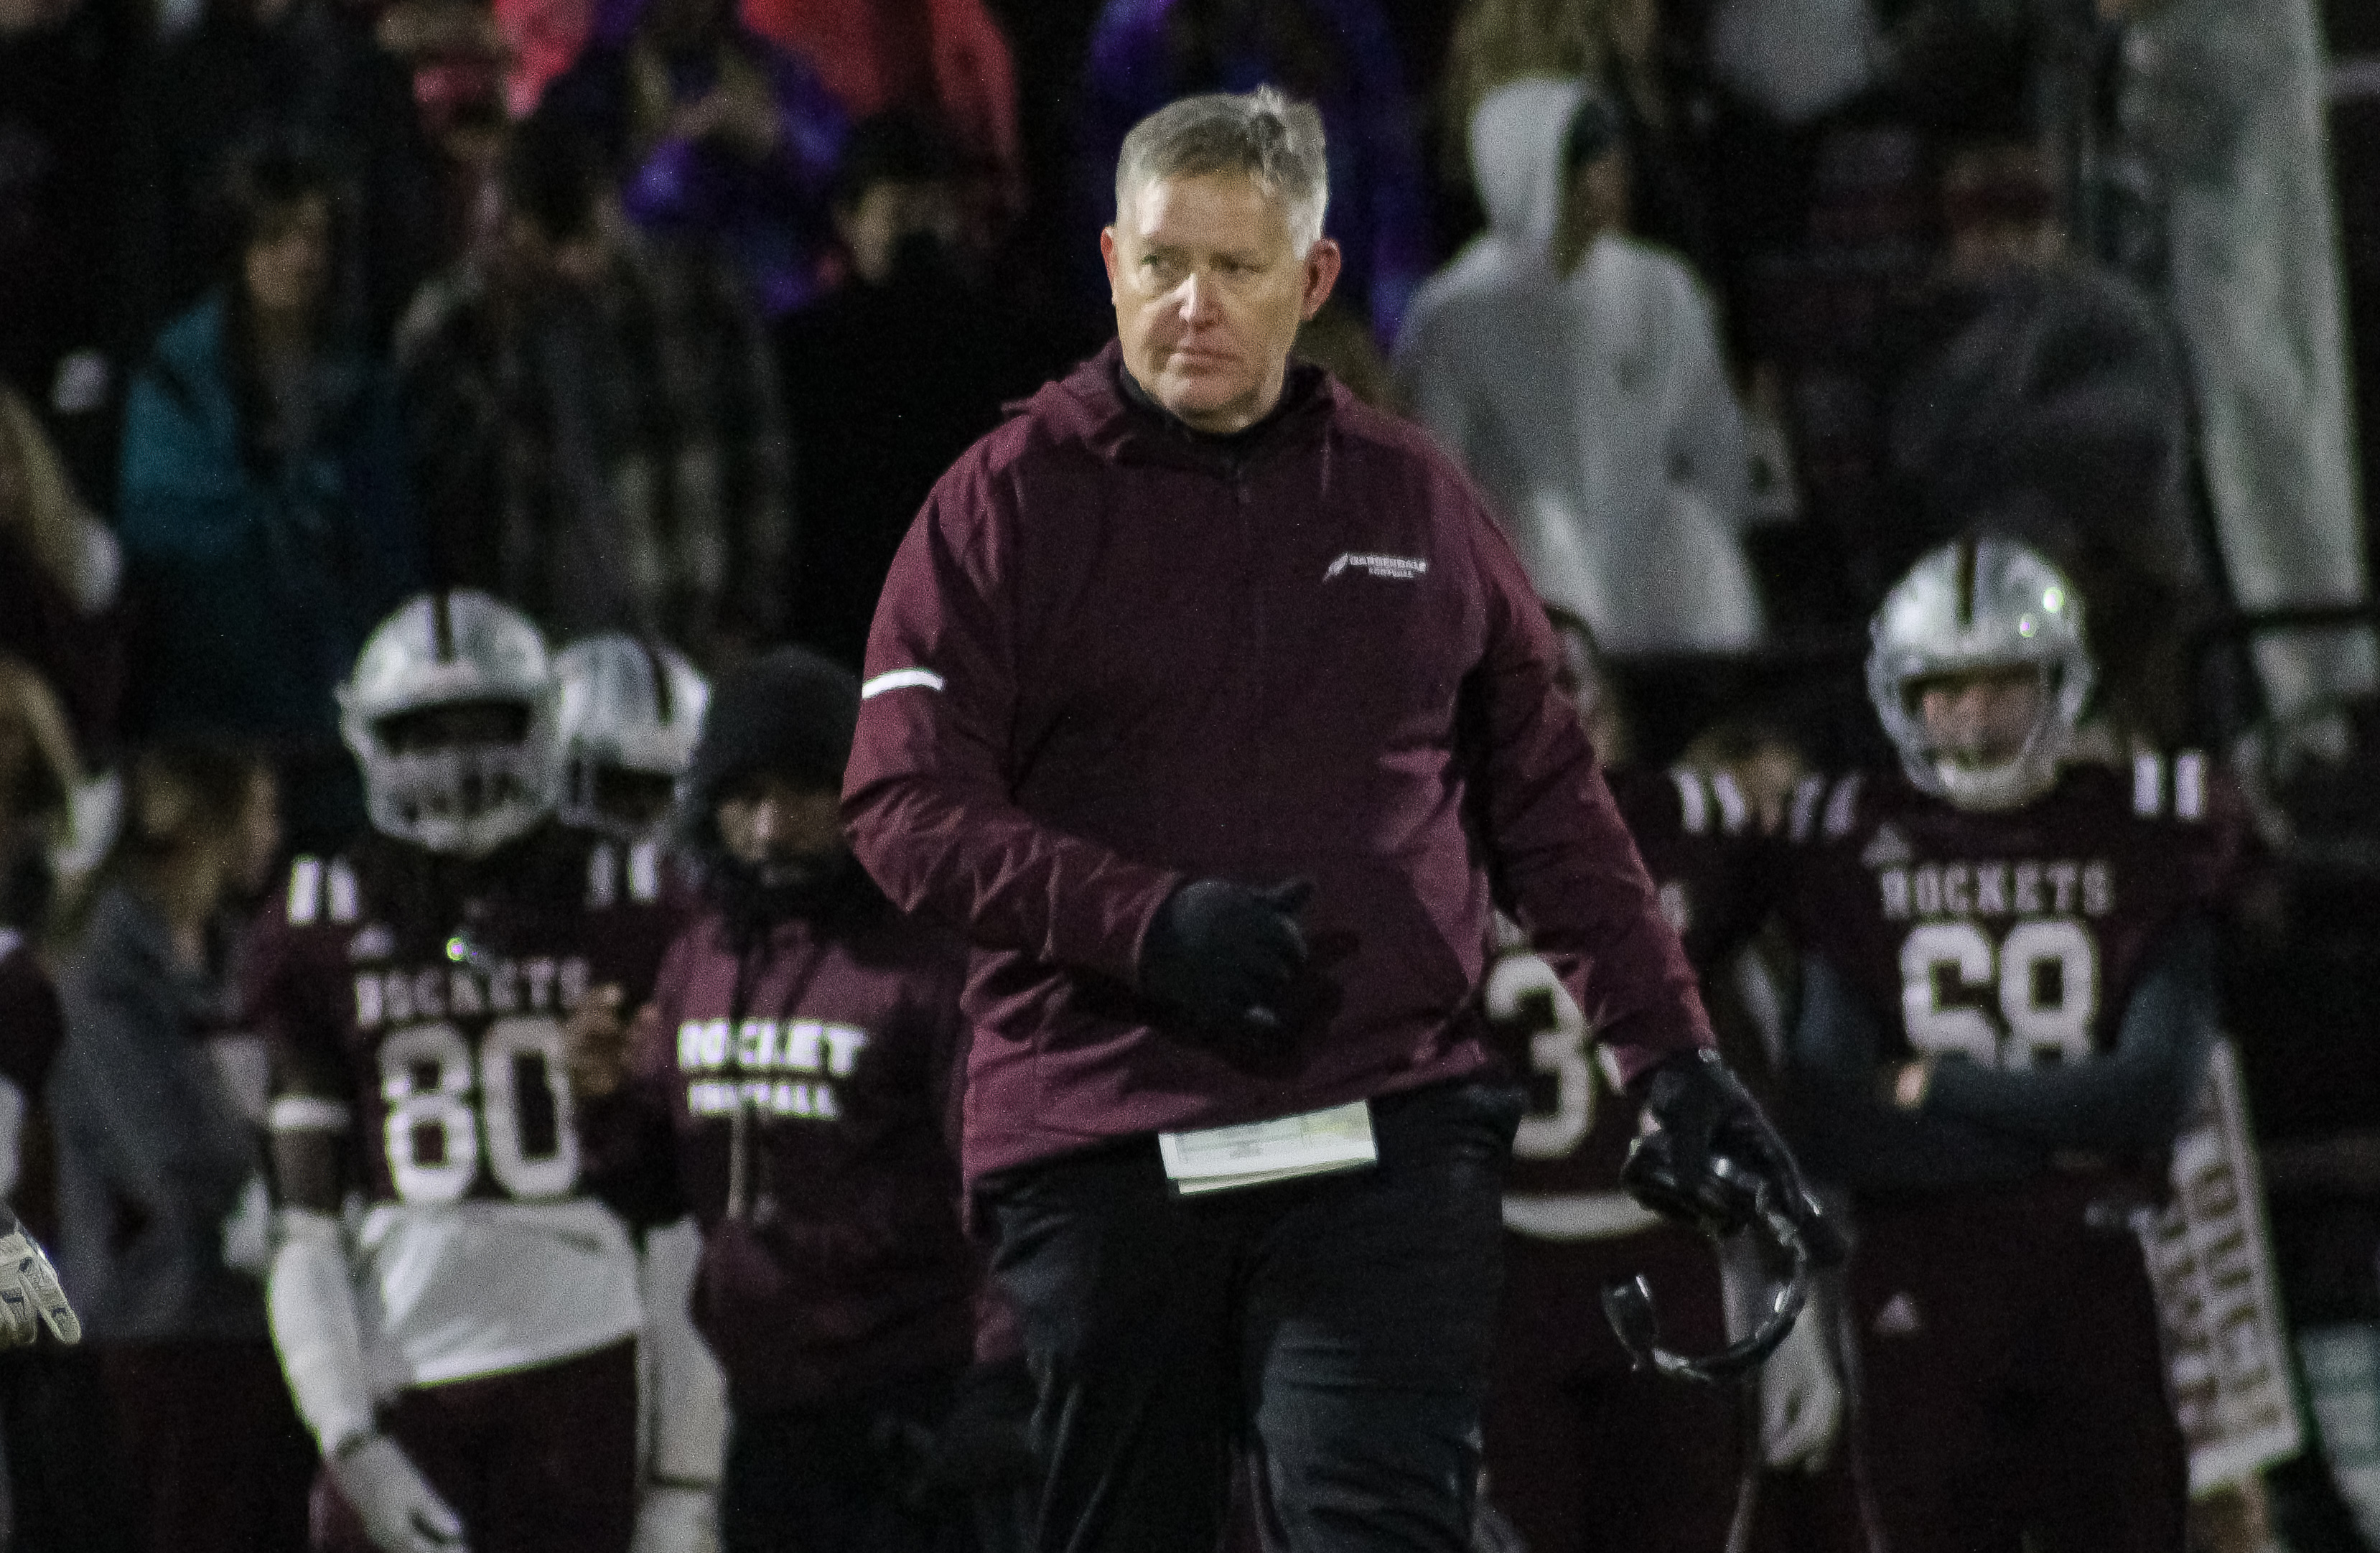 Gardendale head coach Chad Eads